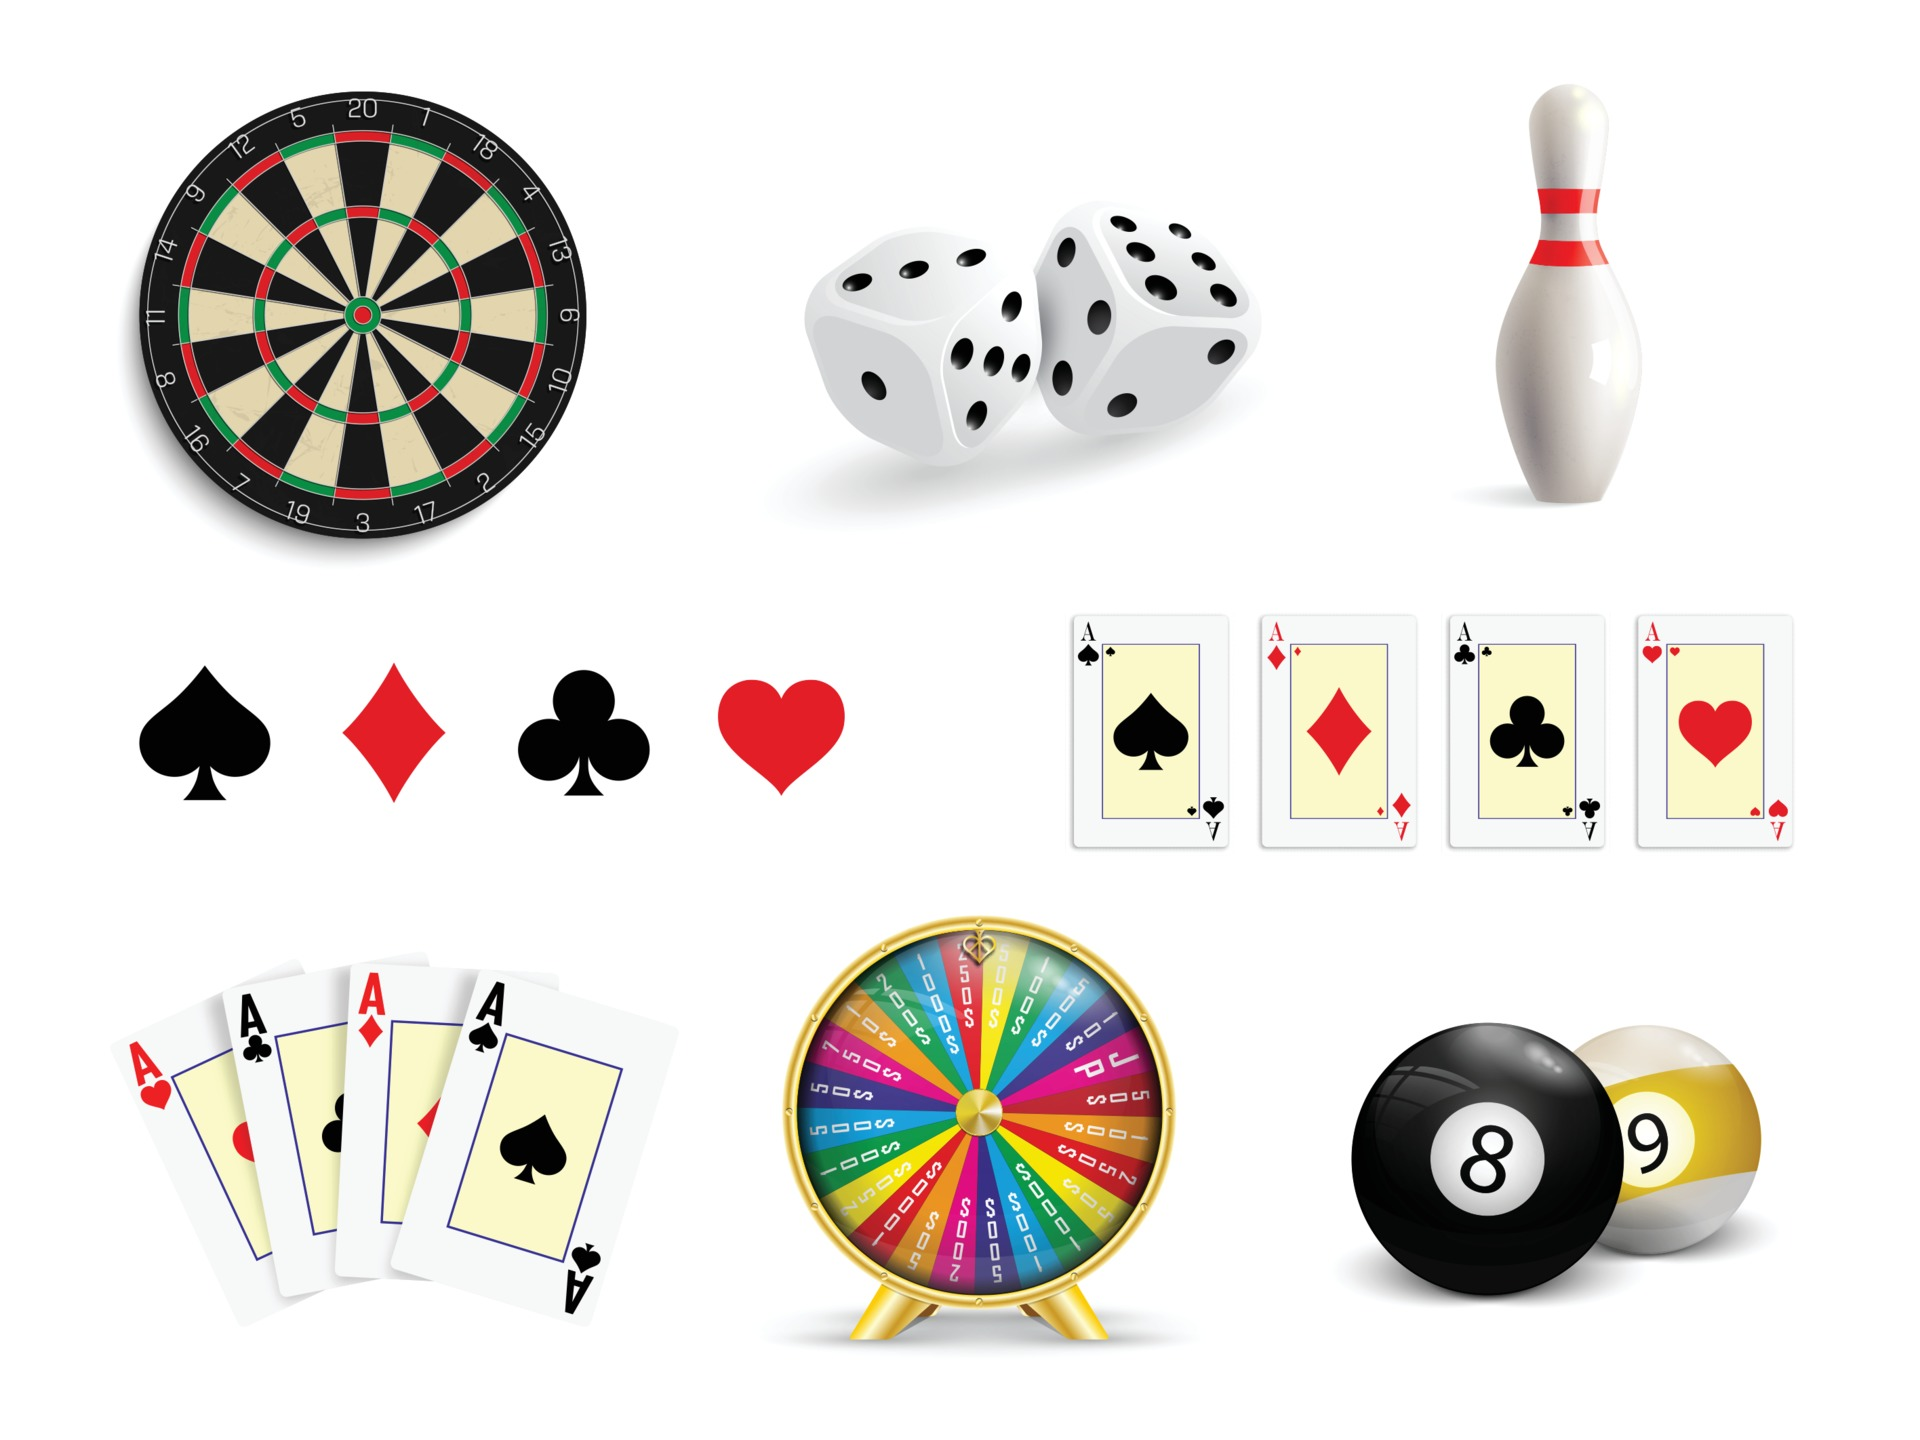 Set of illustrations of gambling. Poker, Casino, Darts, Bowling, Wheel of  Luck and Dice. 1958559 - Download Free Vectors, Clipart Graphics & Vector  Art